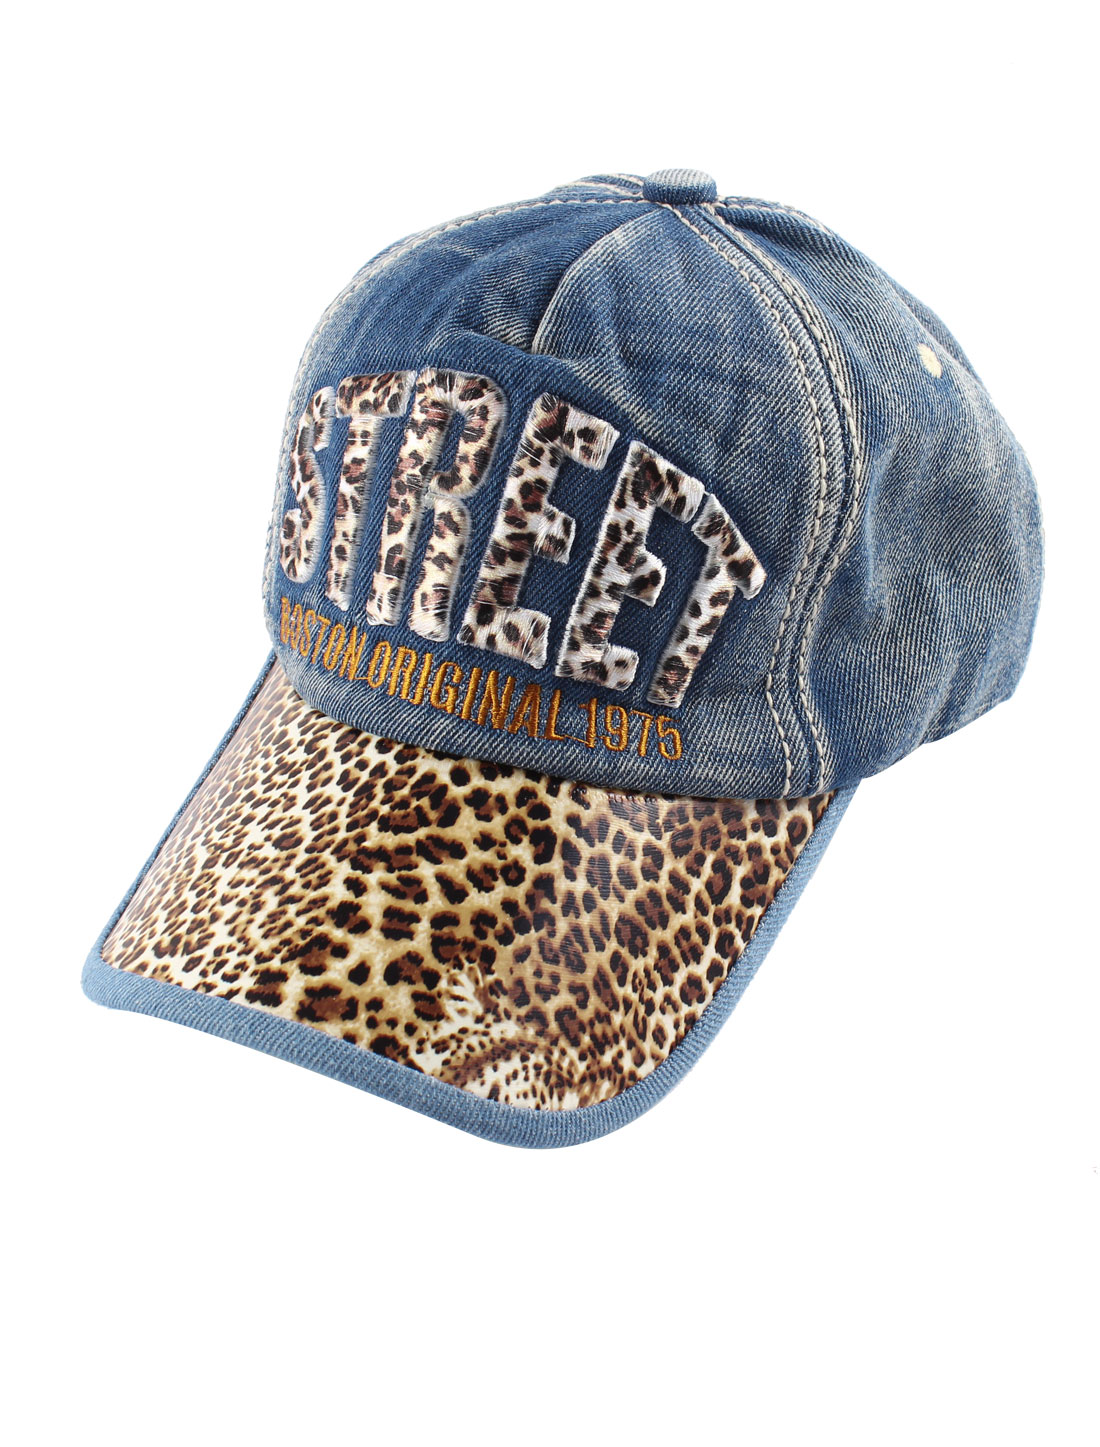 Unisex Blue Denim Slide Buckle Leopard Print Visor Front Baseball Hat